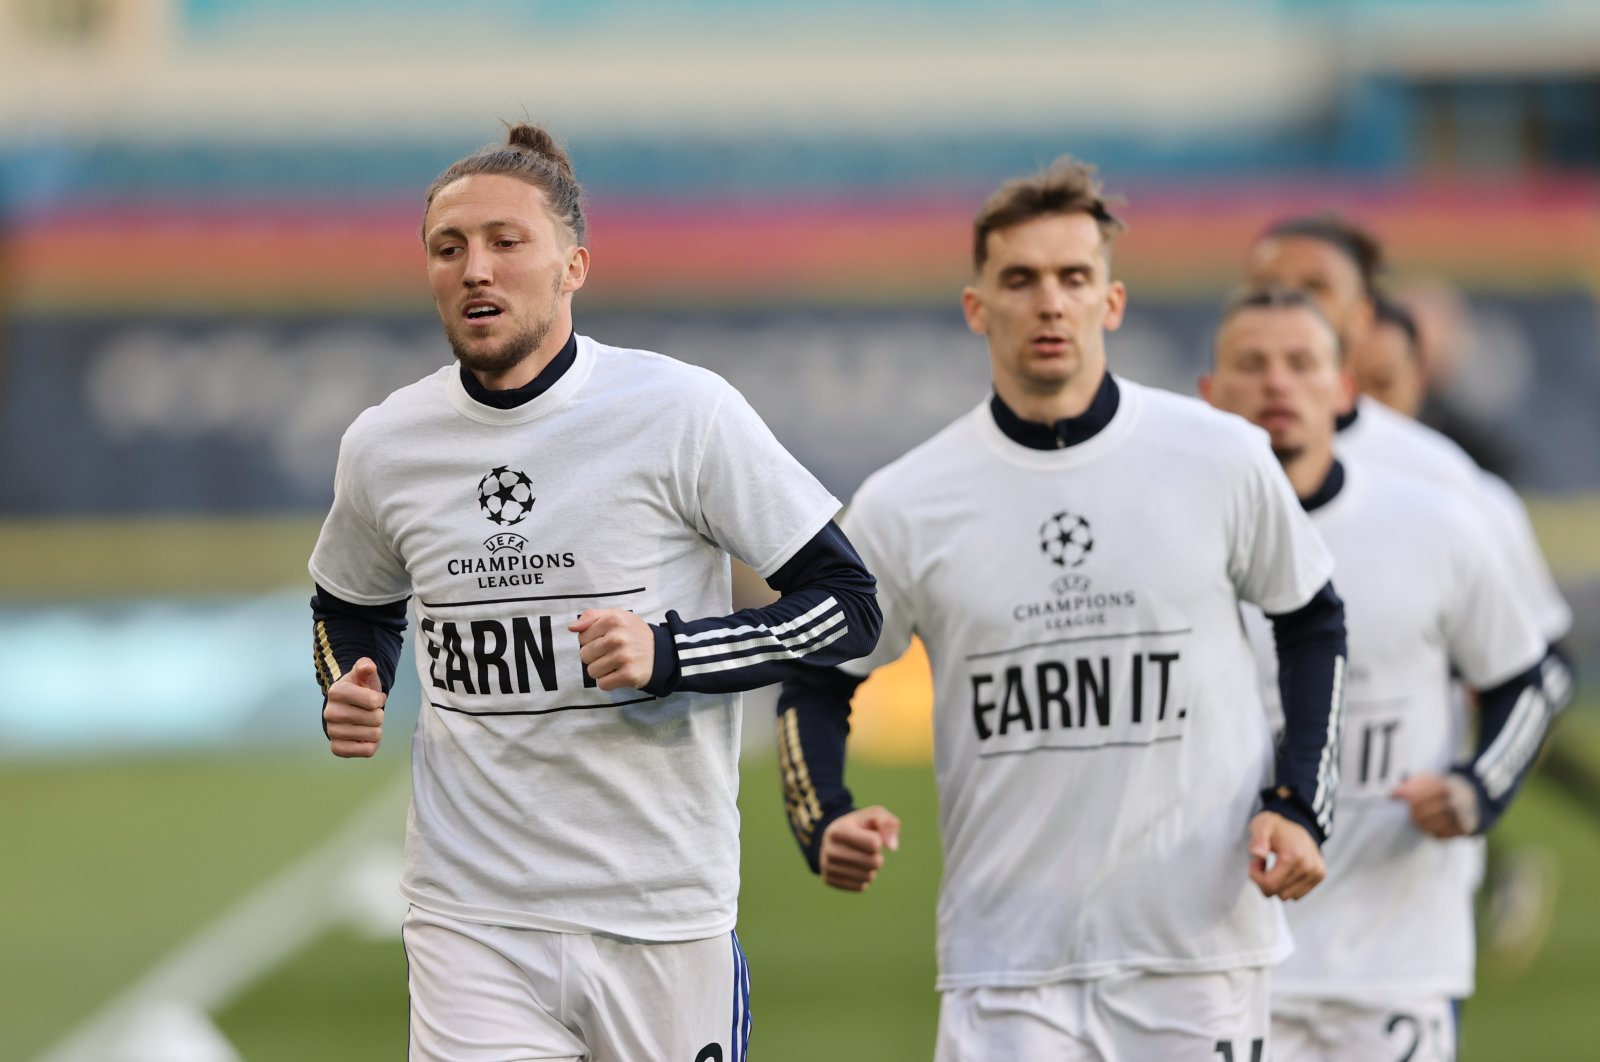 "Leeds United's Luke Ayling and Diego Llorente during the warmup before the match wearing UEFA Champions League T-Shirts with messages saying ""Earn It"" at the Elland Road Stadium in Leeds, U.K., April 19, 2021. (Pool via Reuters)"